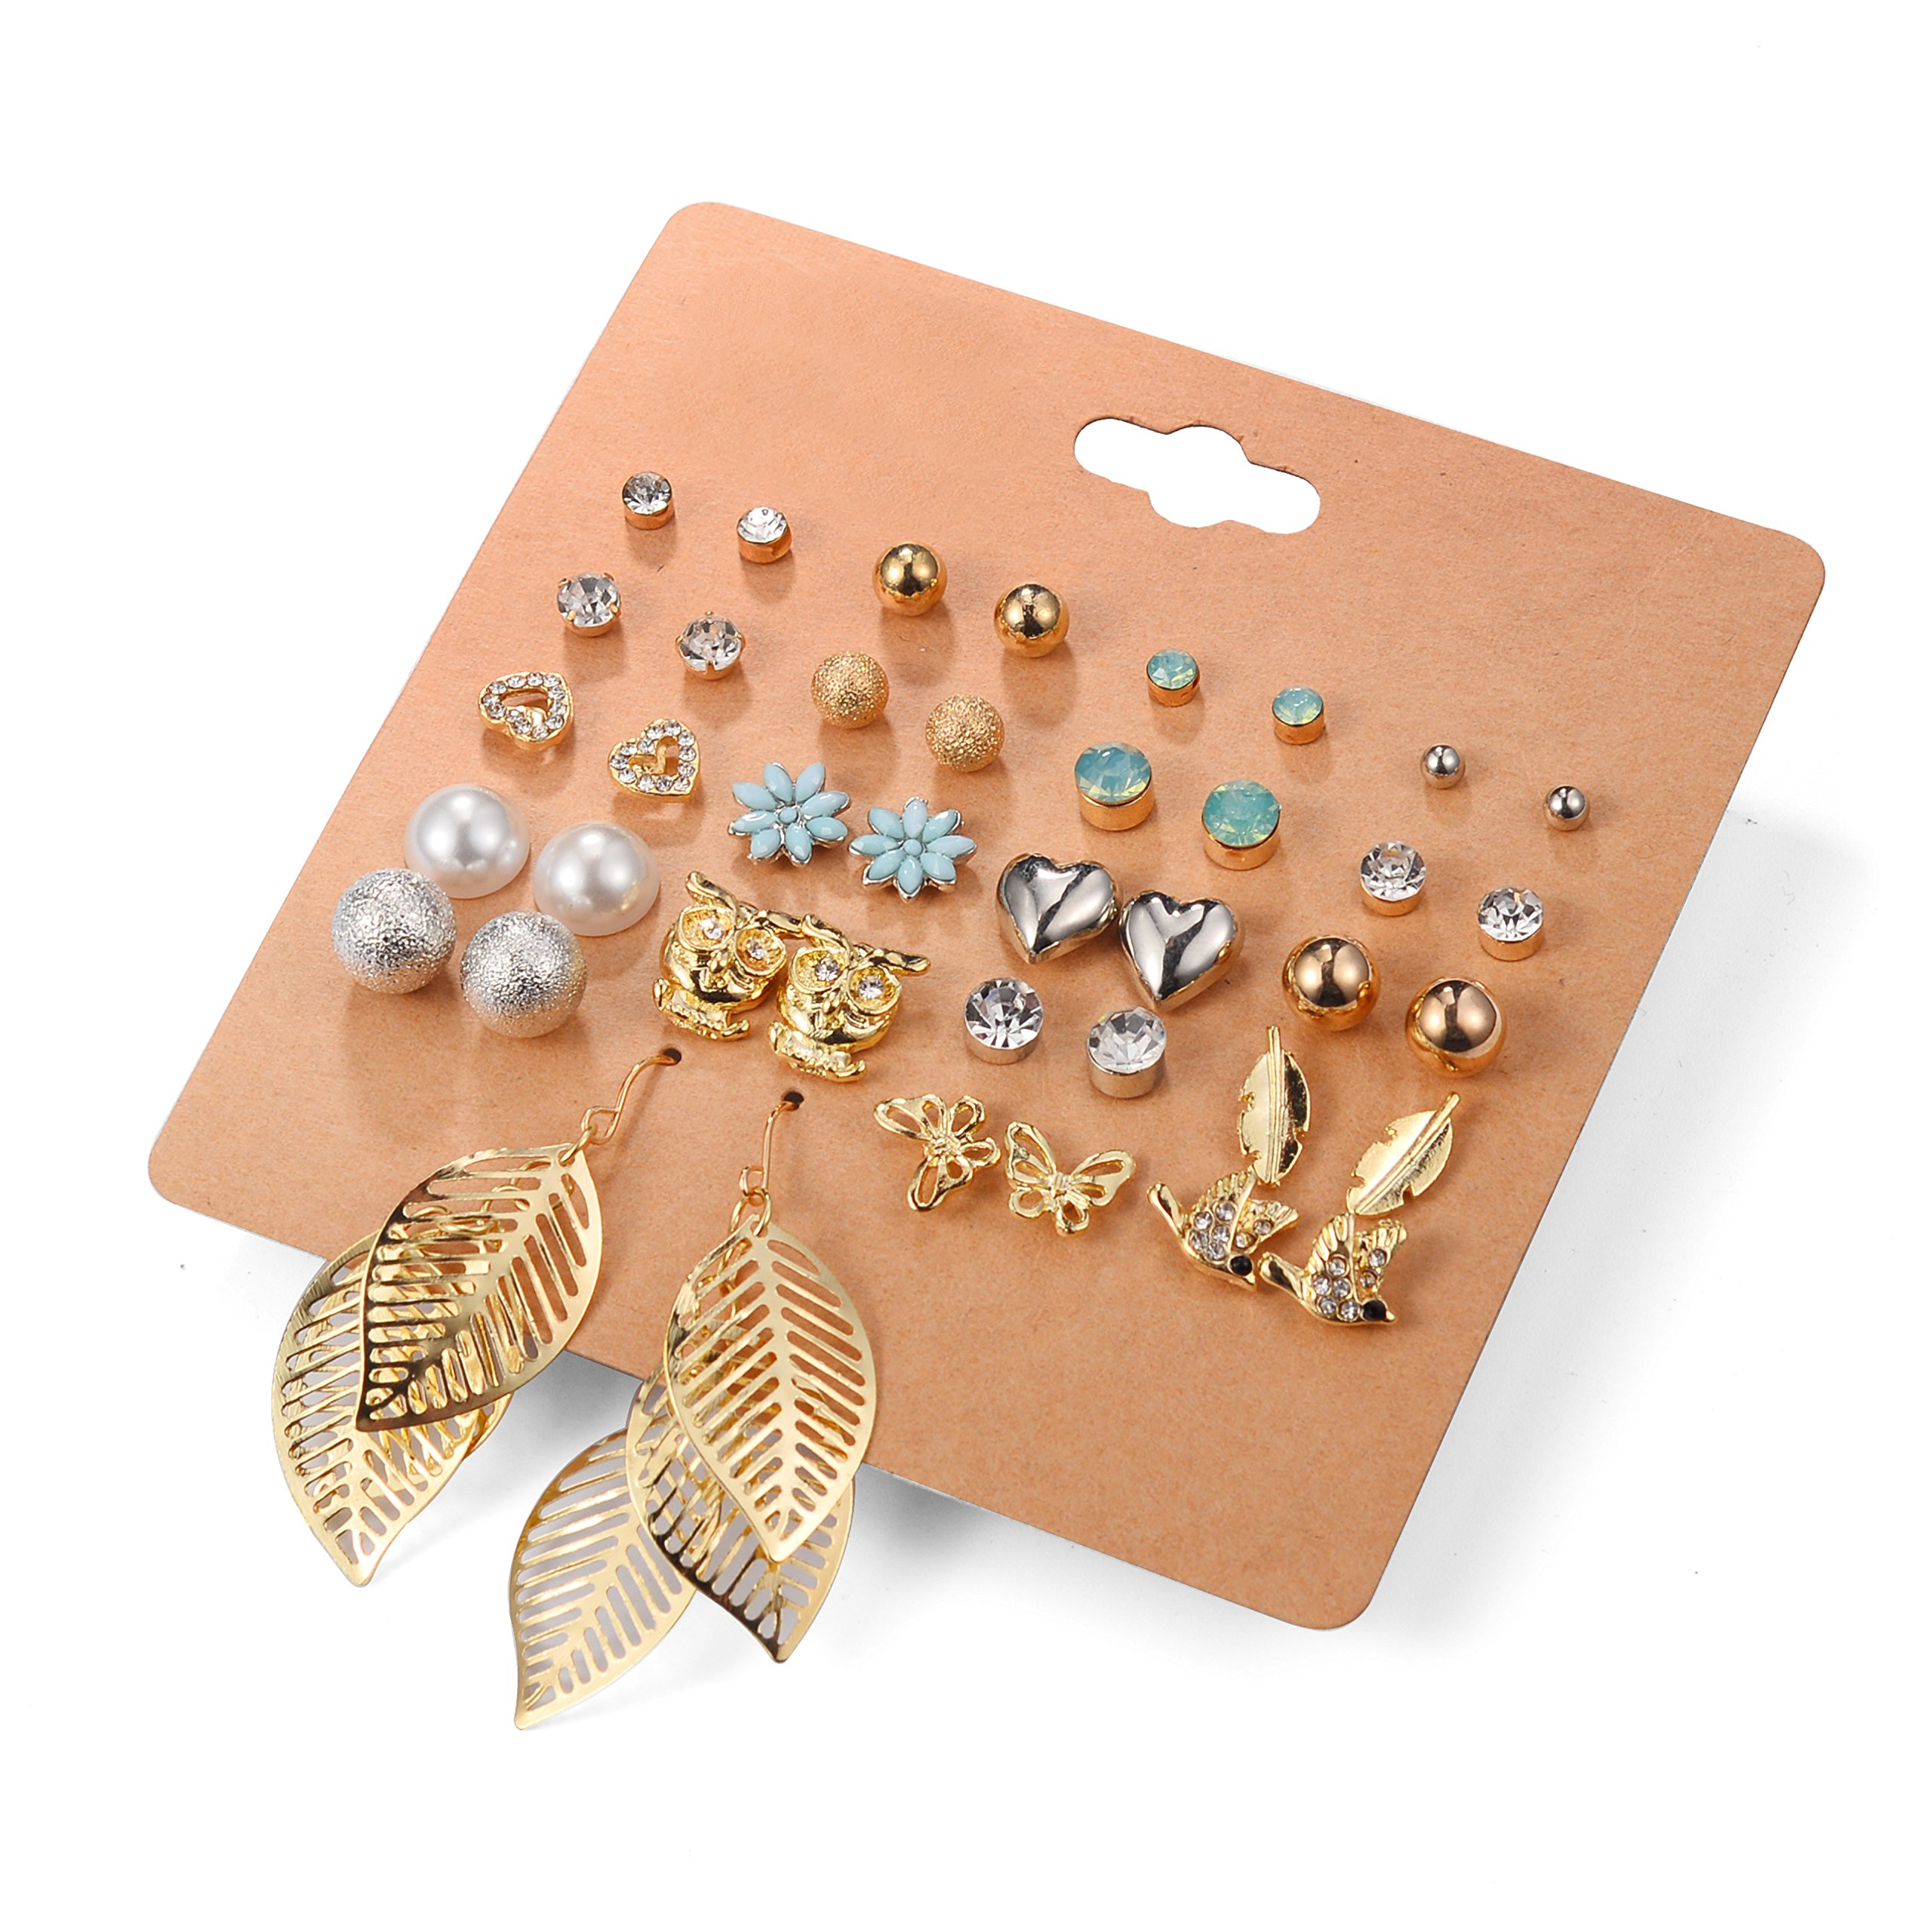 Unique Queen Women's Girl's Stainless Steel Assorted Multiple Stud Earring 20 Style Sets,Hypoallergenic (Style-1) by Unique Queen